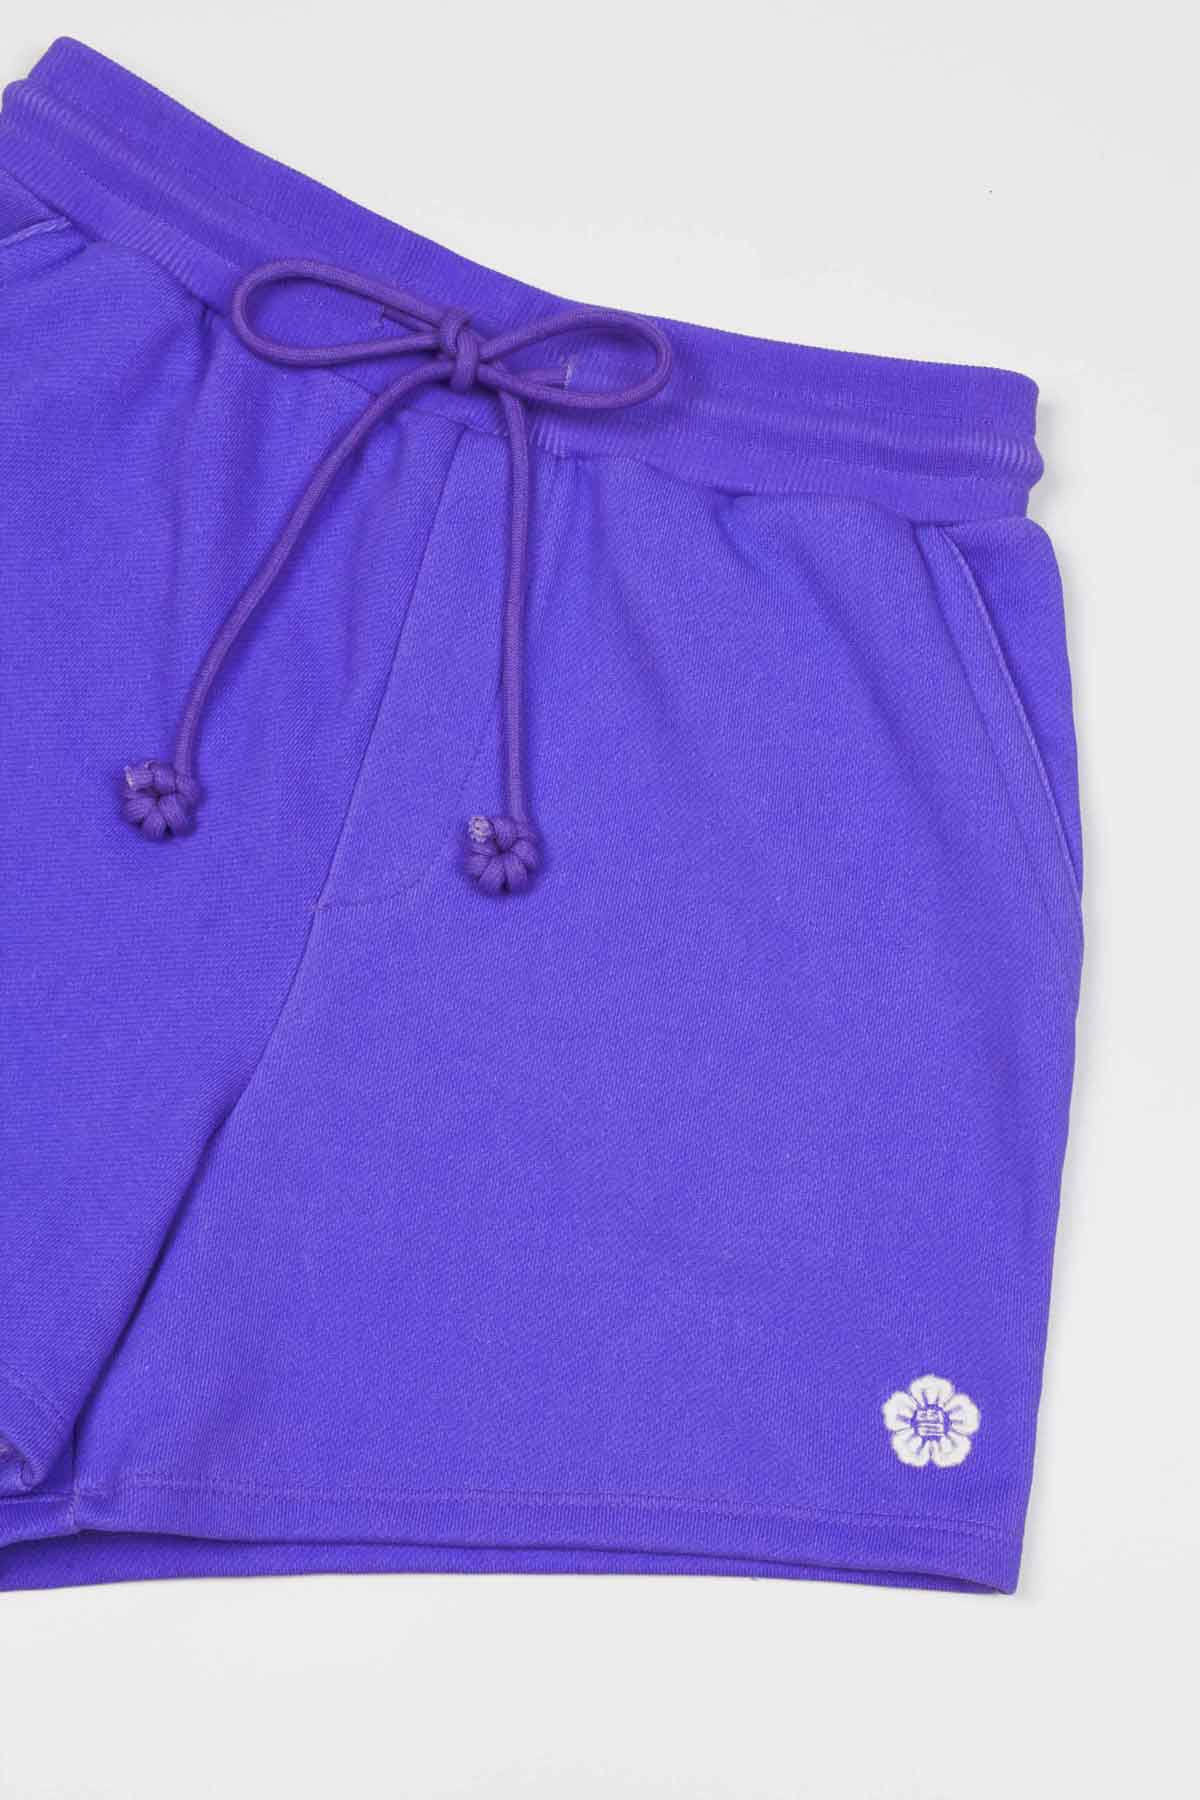 Photo of Violet Kush Women's Sweat Shorts, number 5